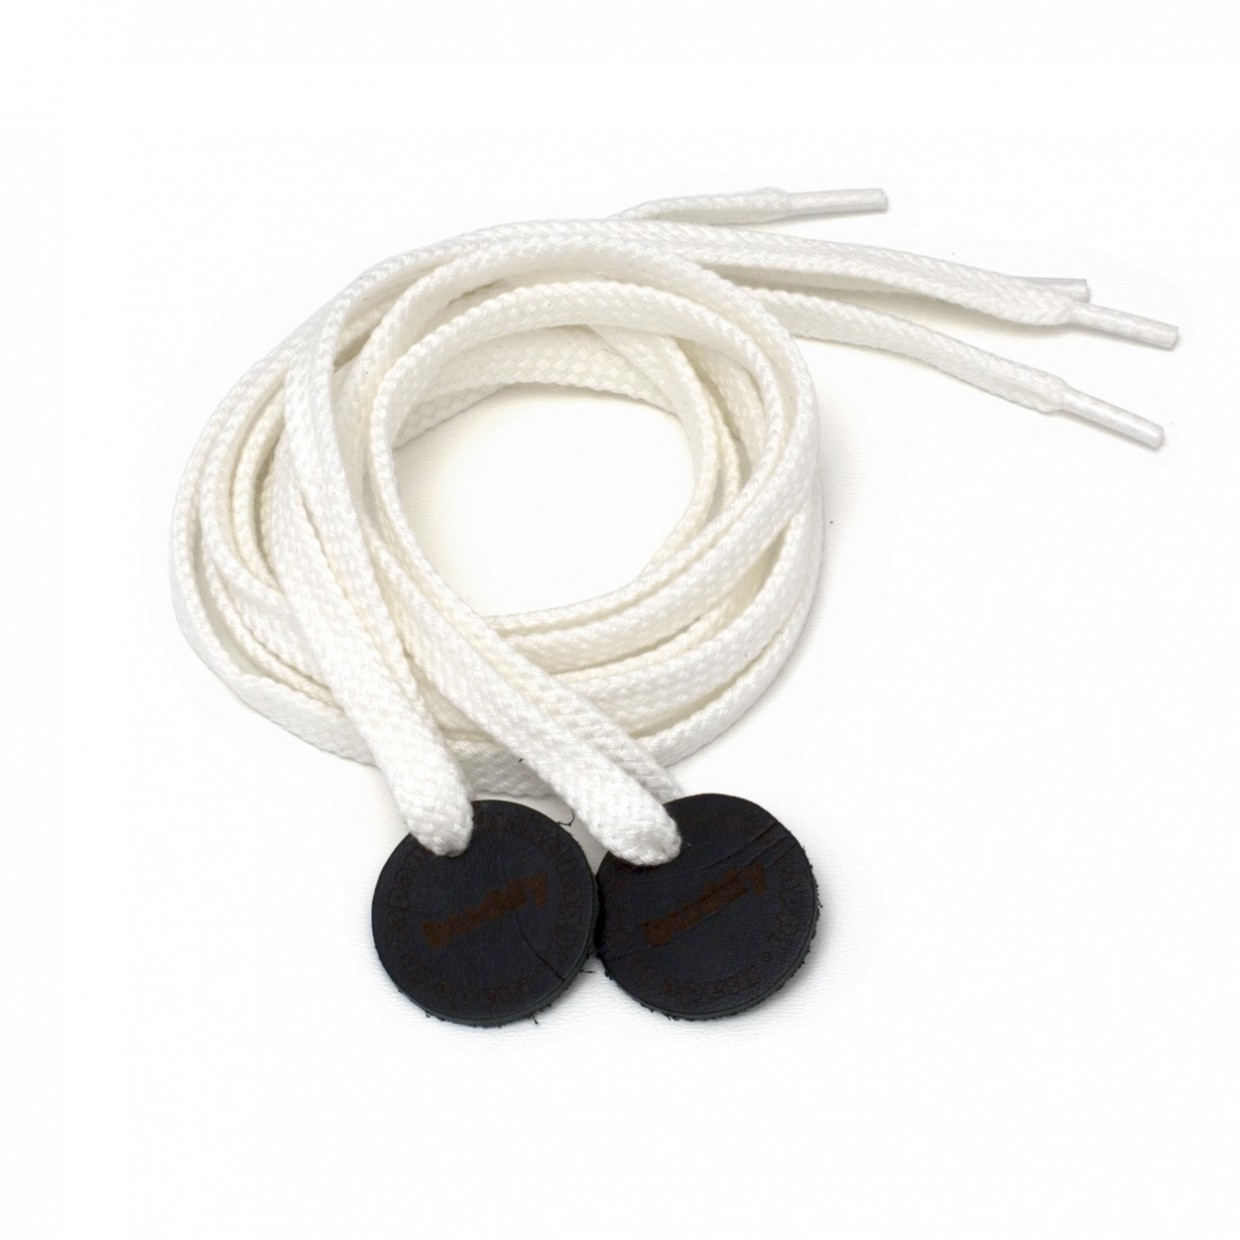 Shoelaces Wihite with Leather patch buddy